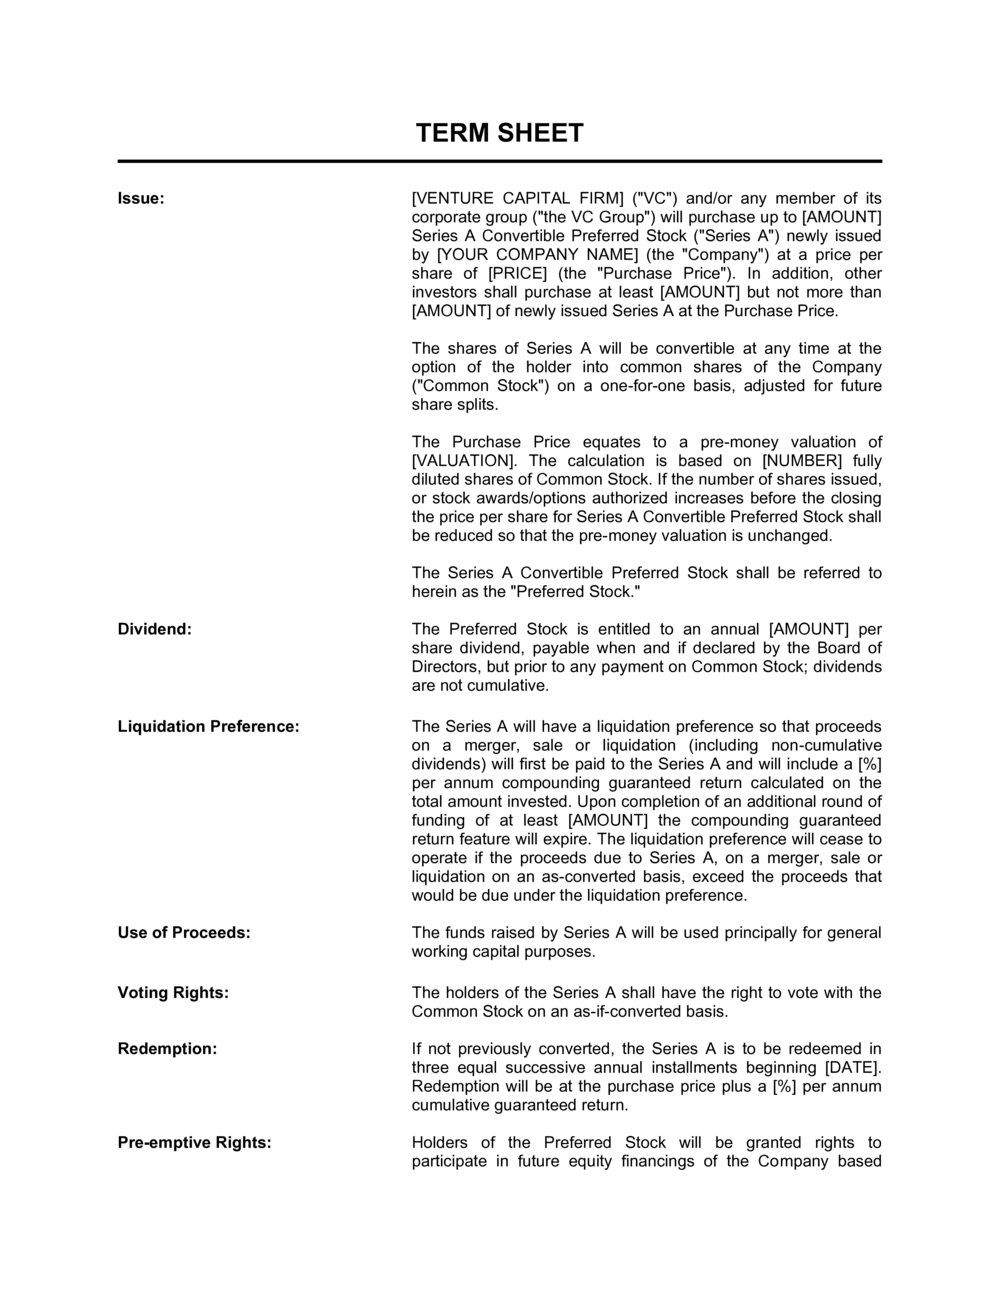 Business-in-a-Box's Term Sheet Template